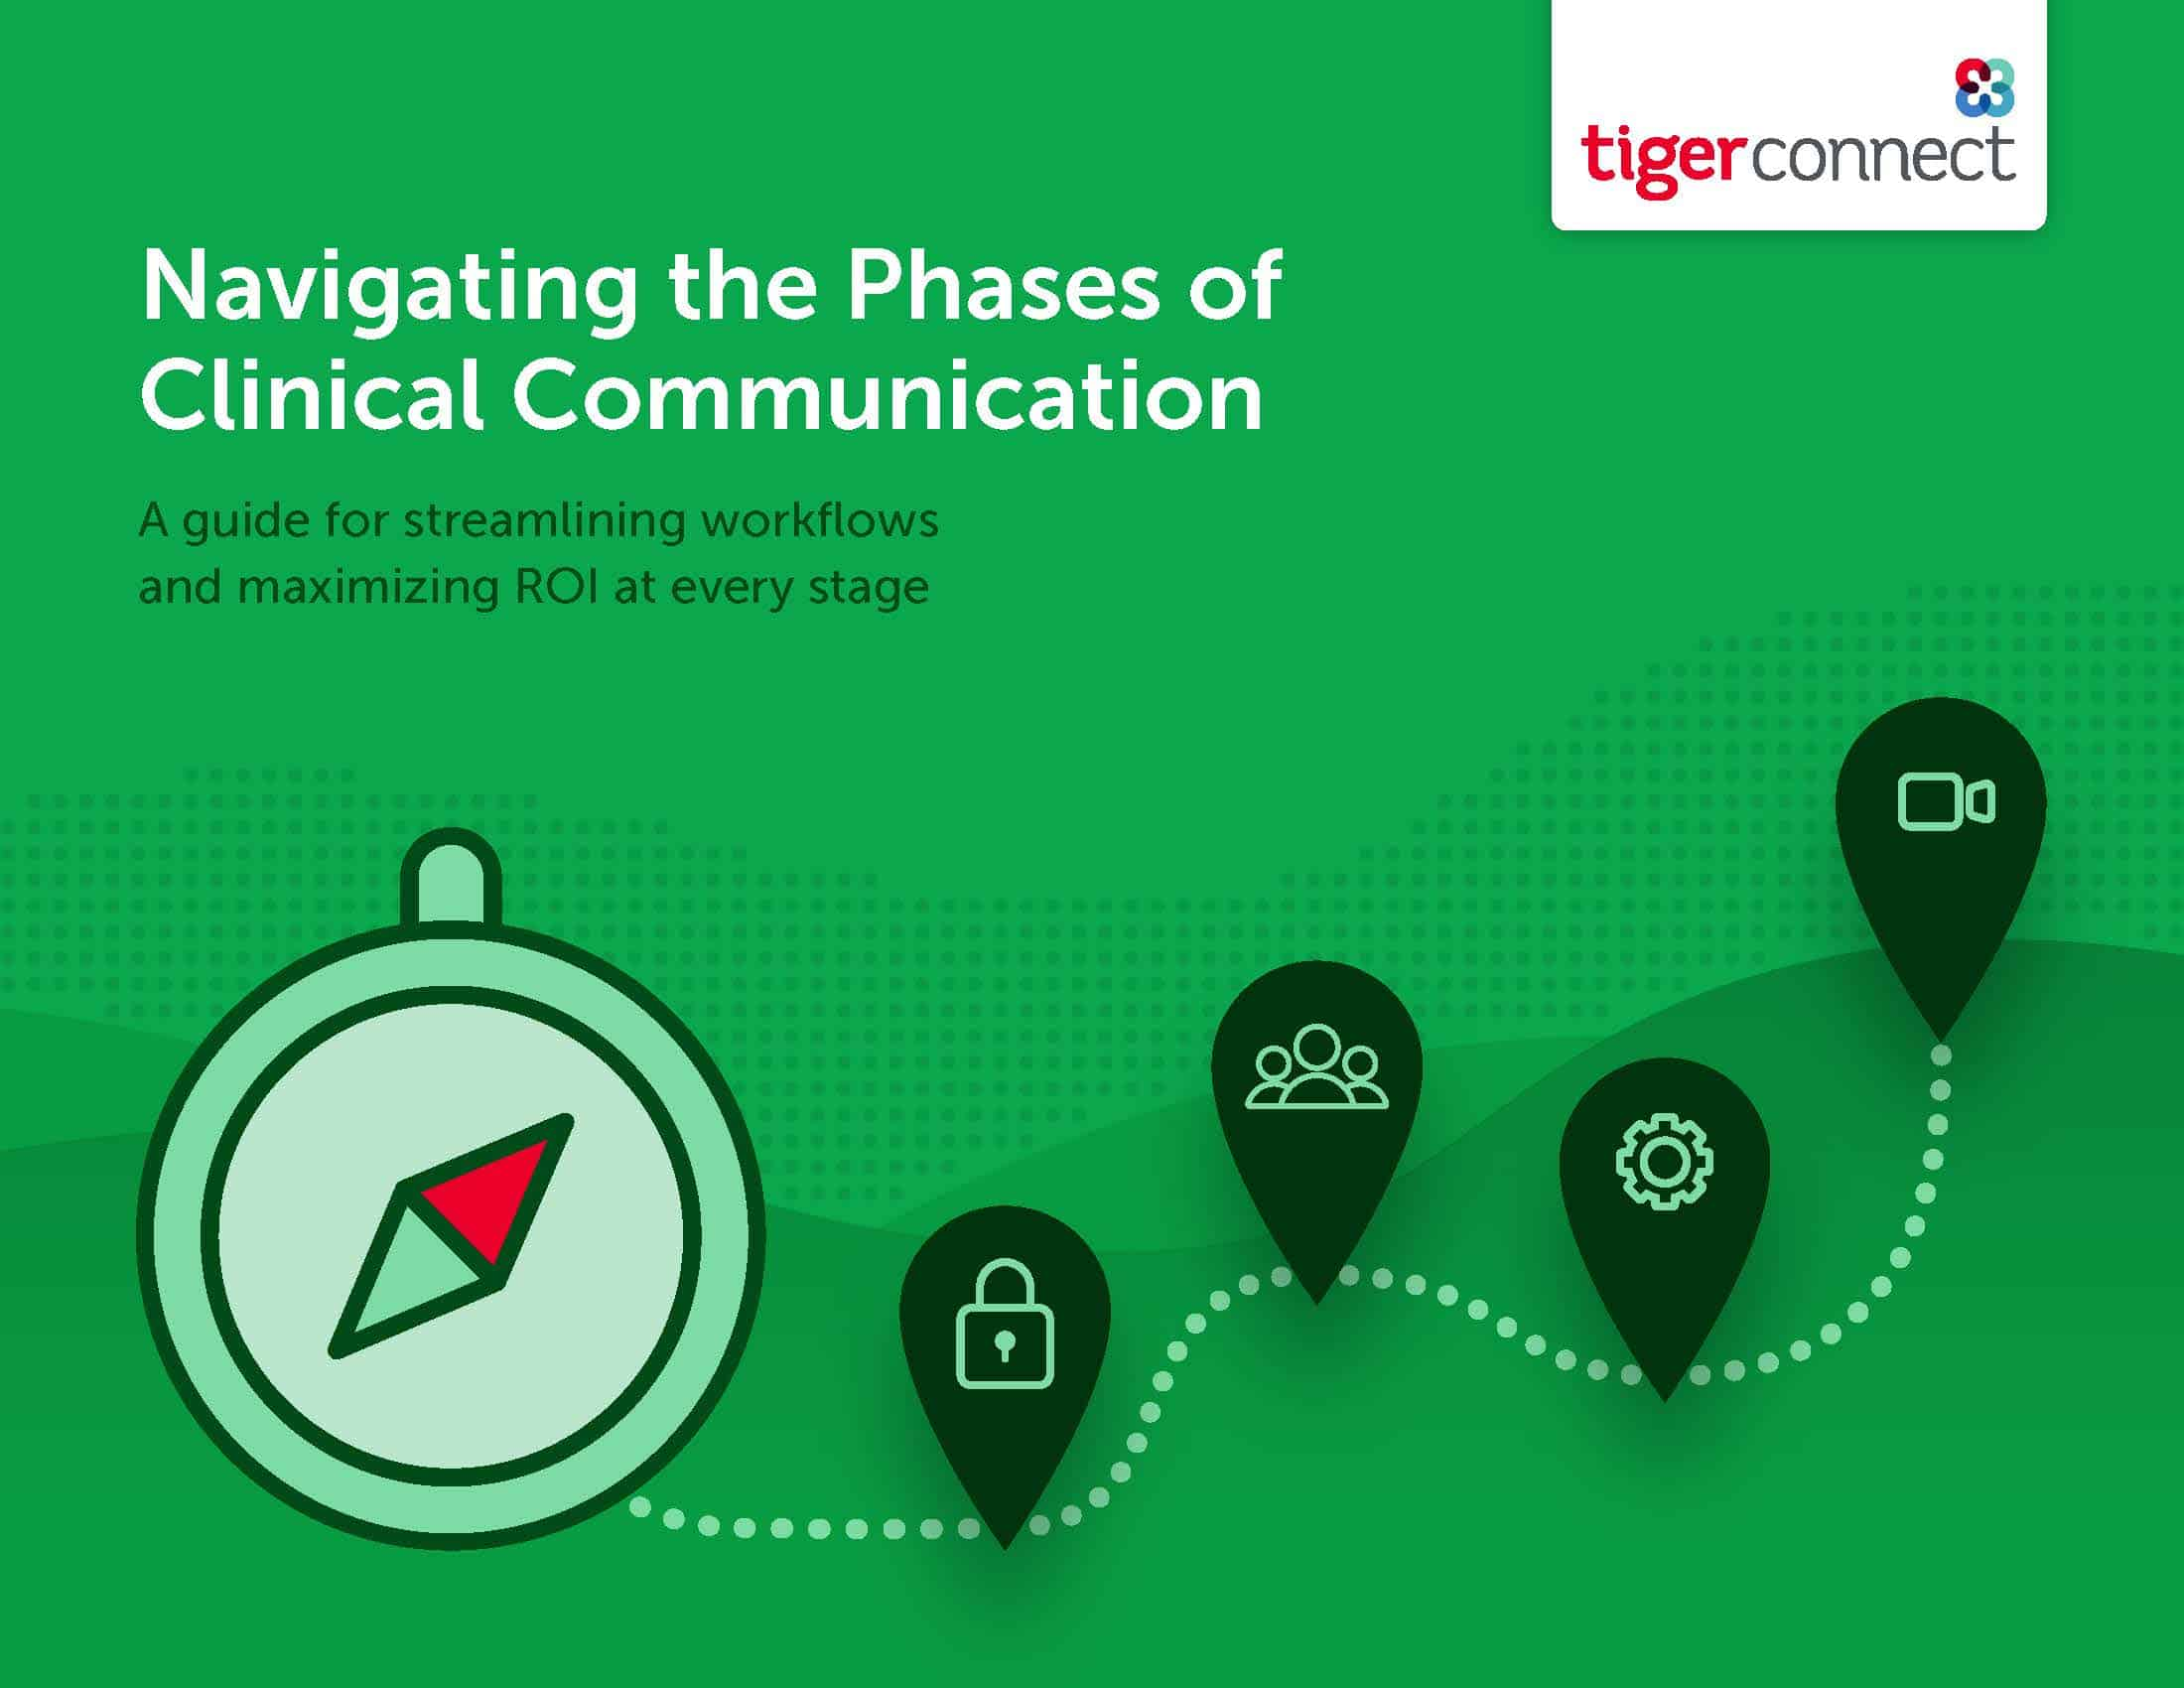 Navigating the Phases of Clinical Communication